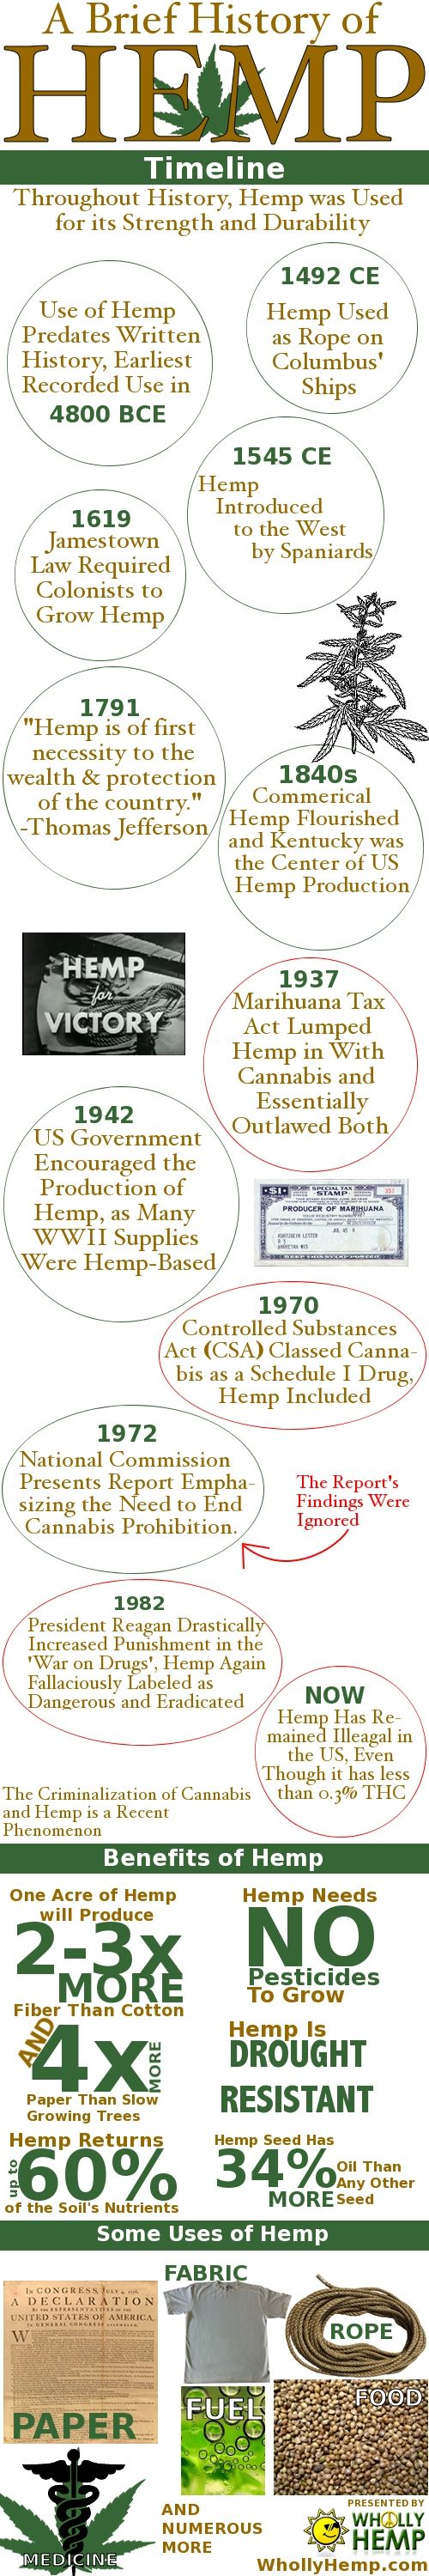 A Brief History of Hemp